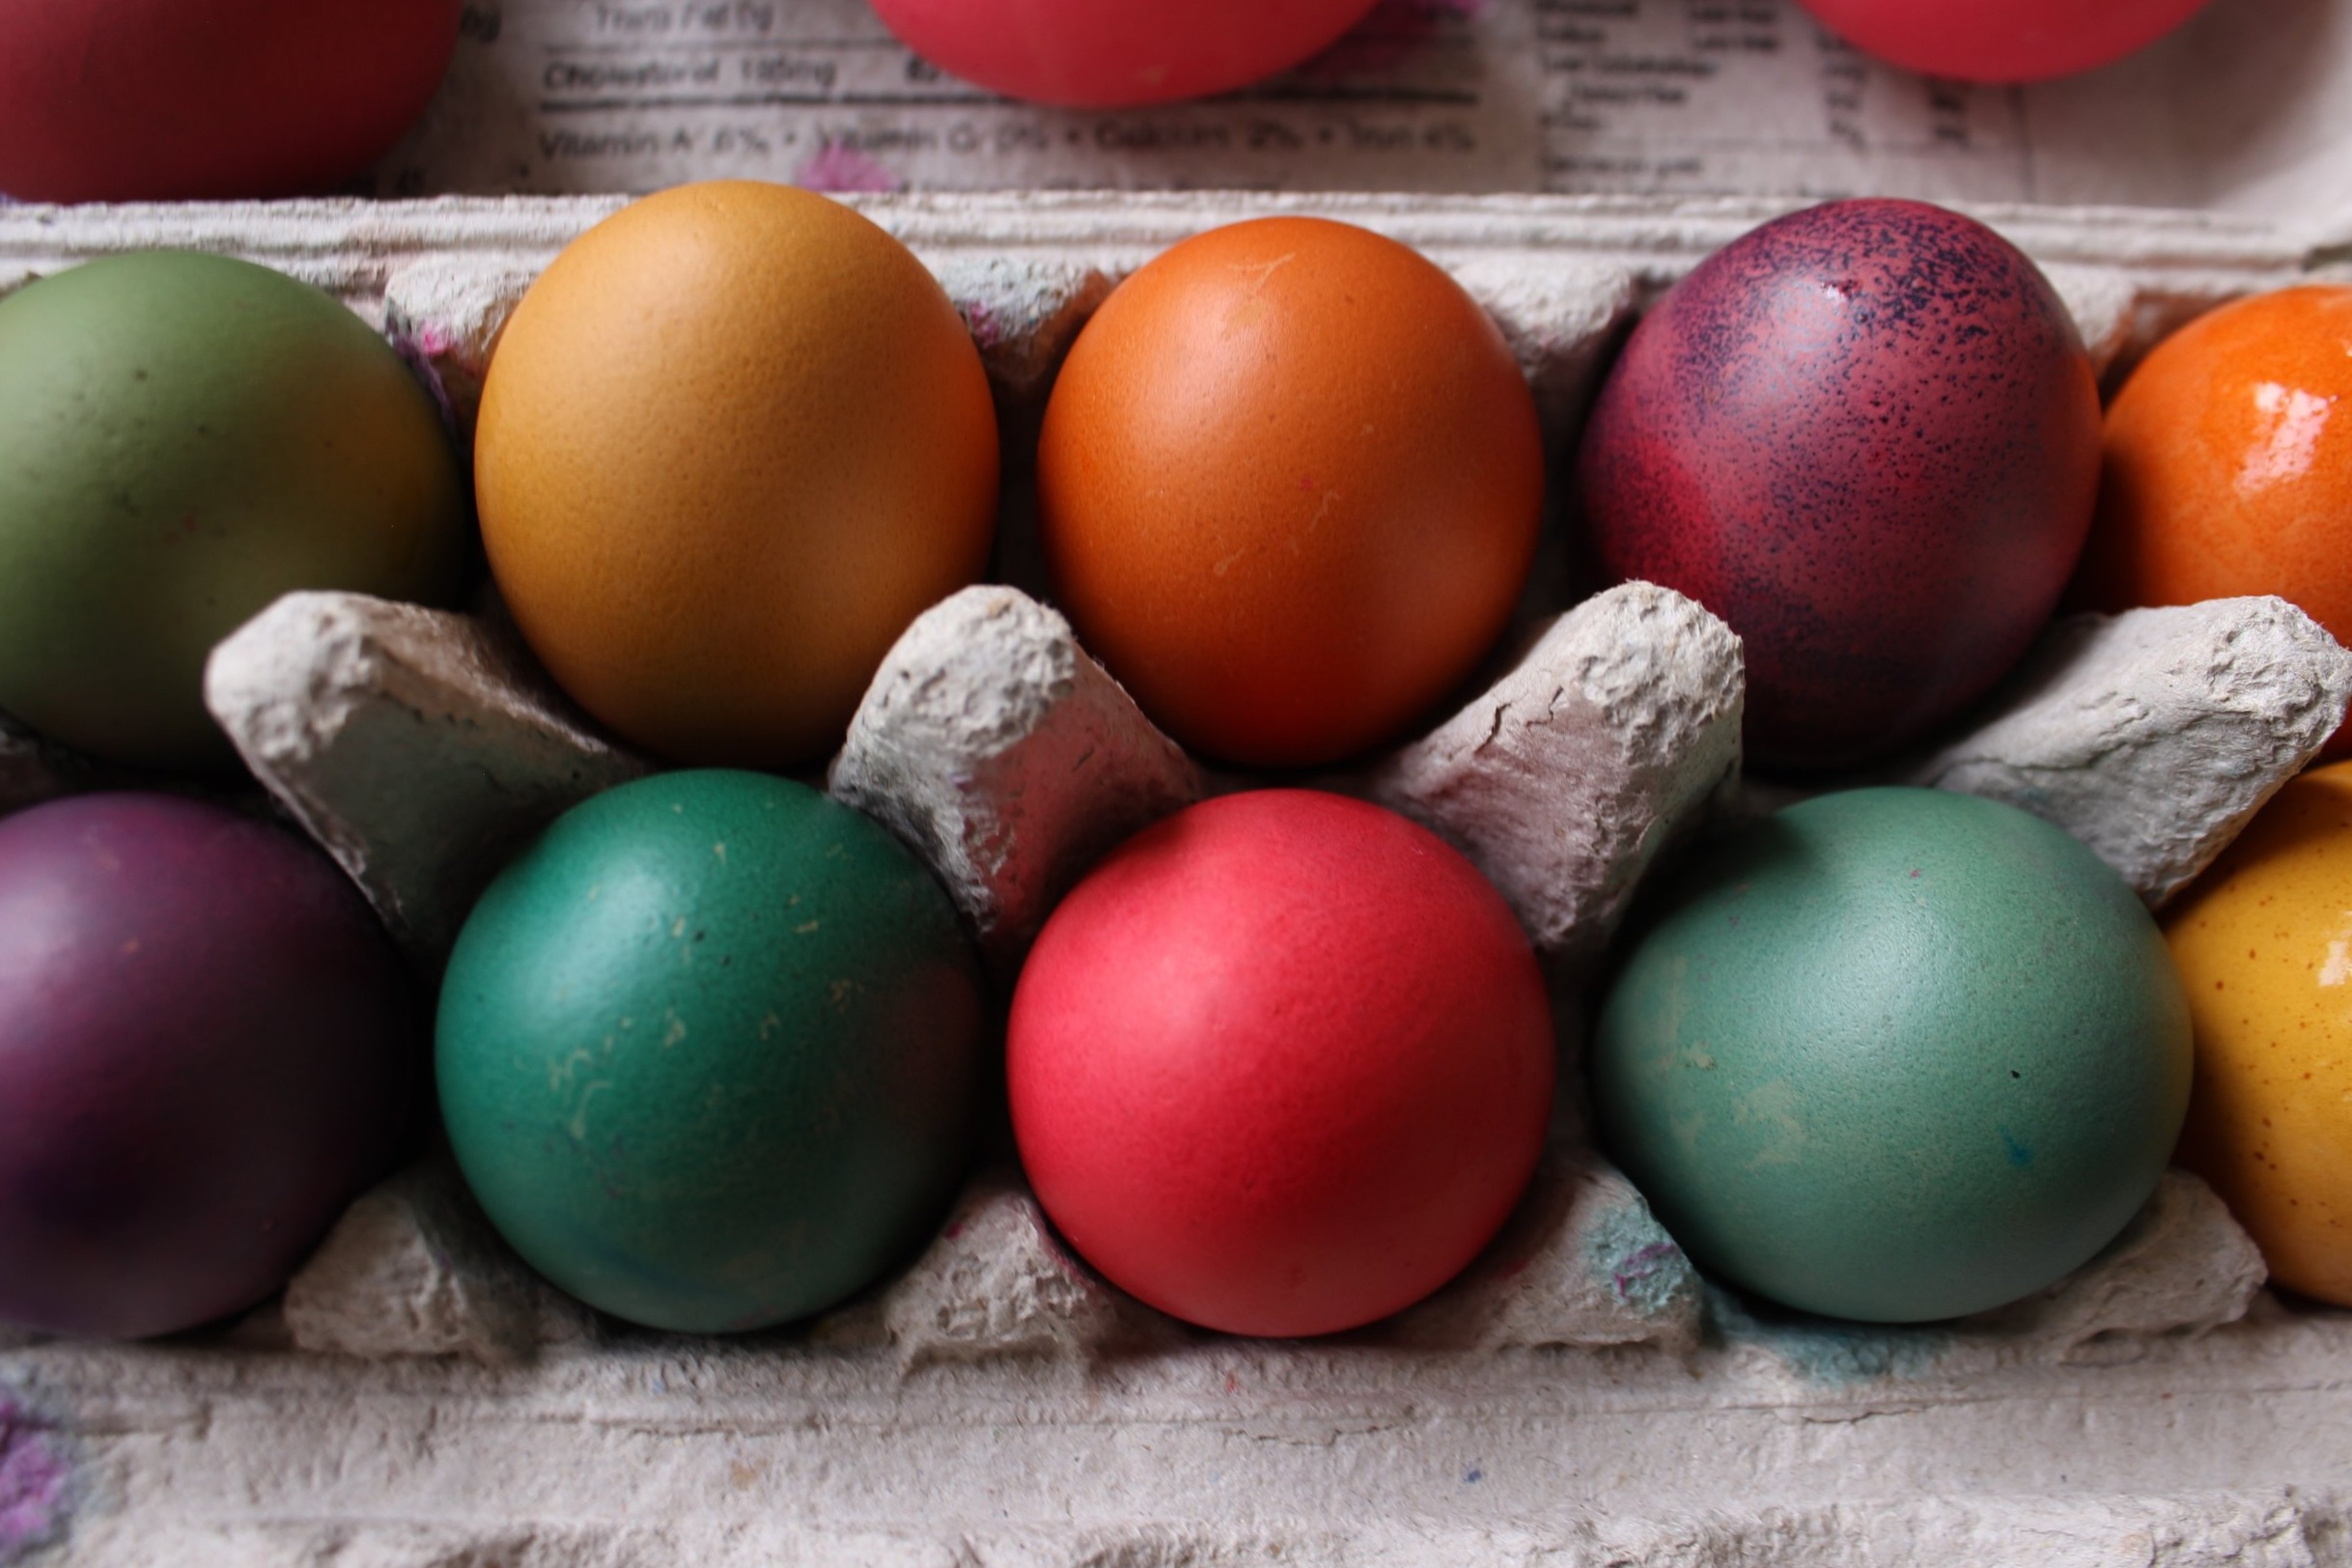 The dye variations and imperfections of each egg adds to the charm!